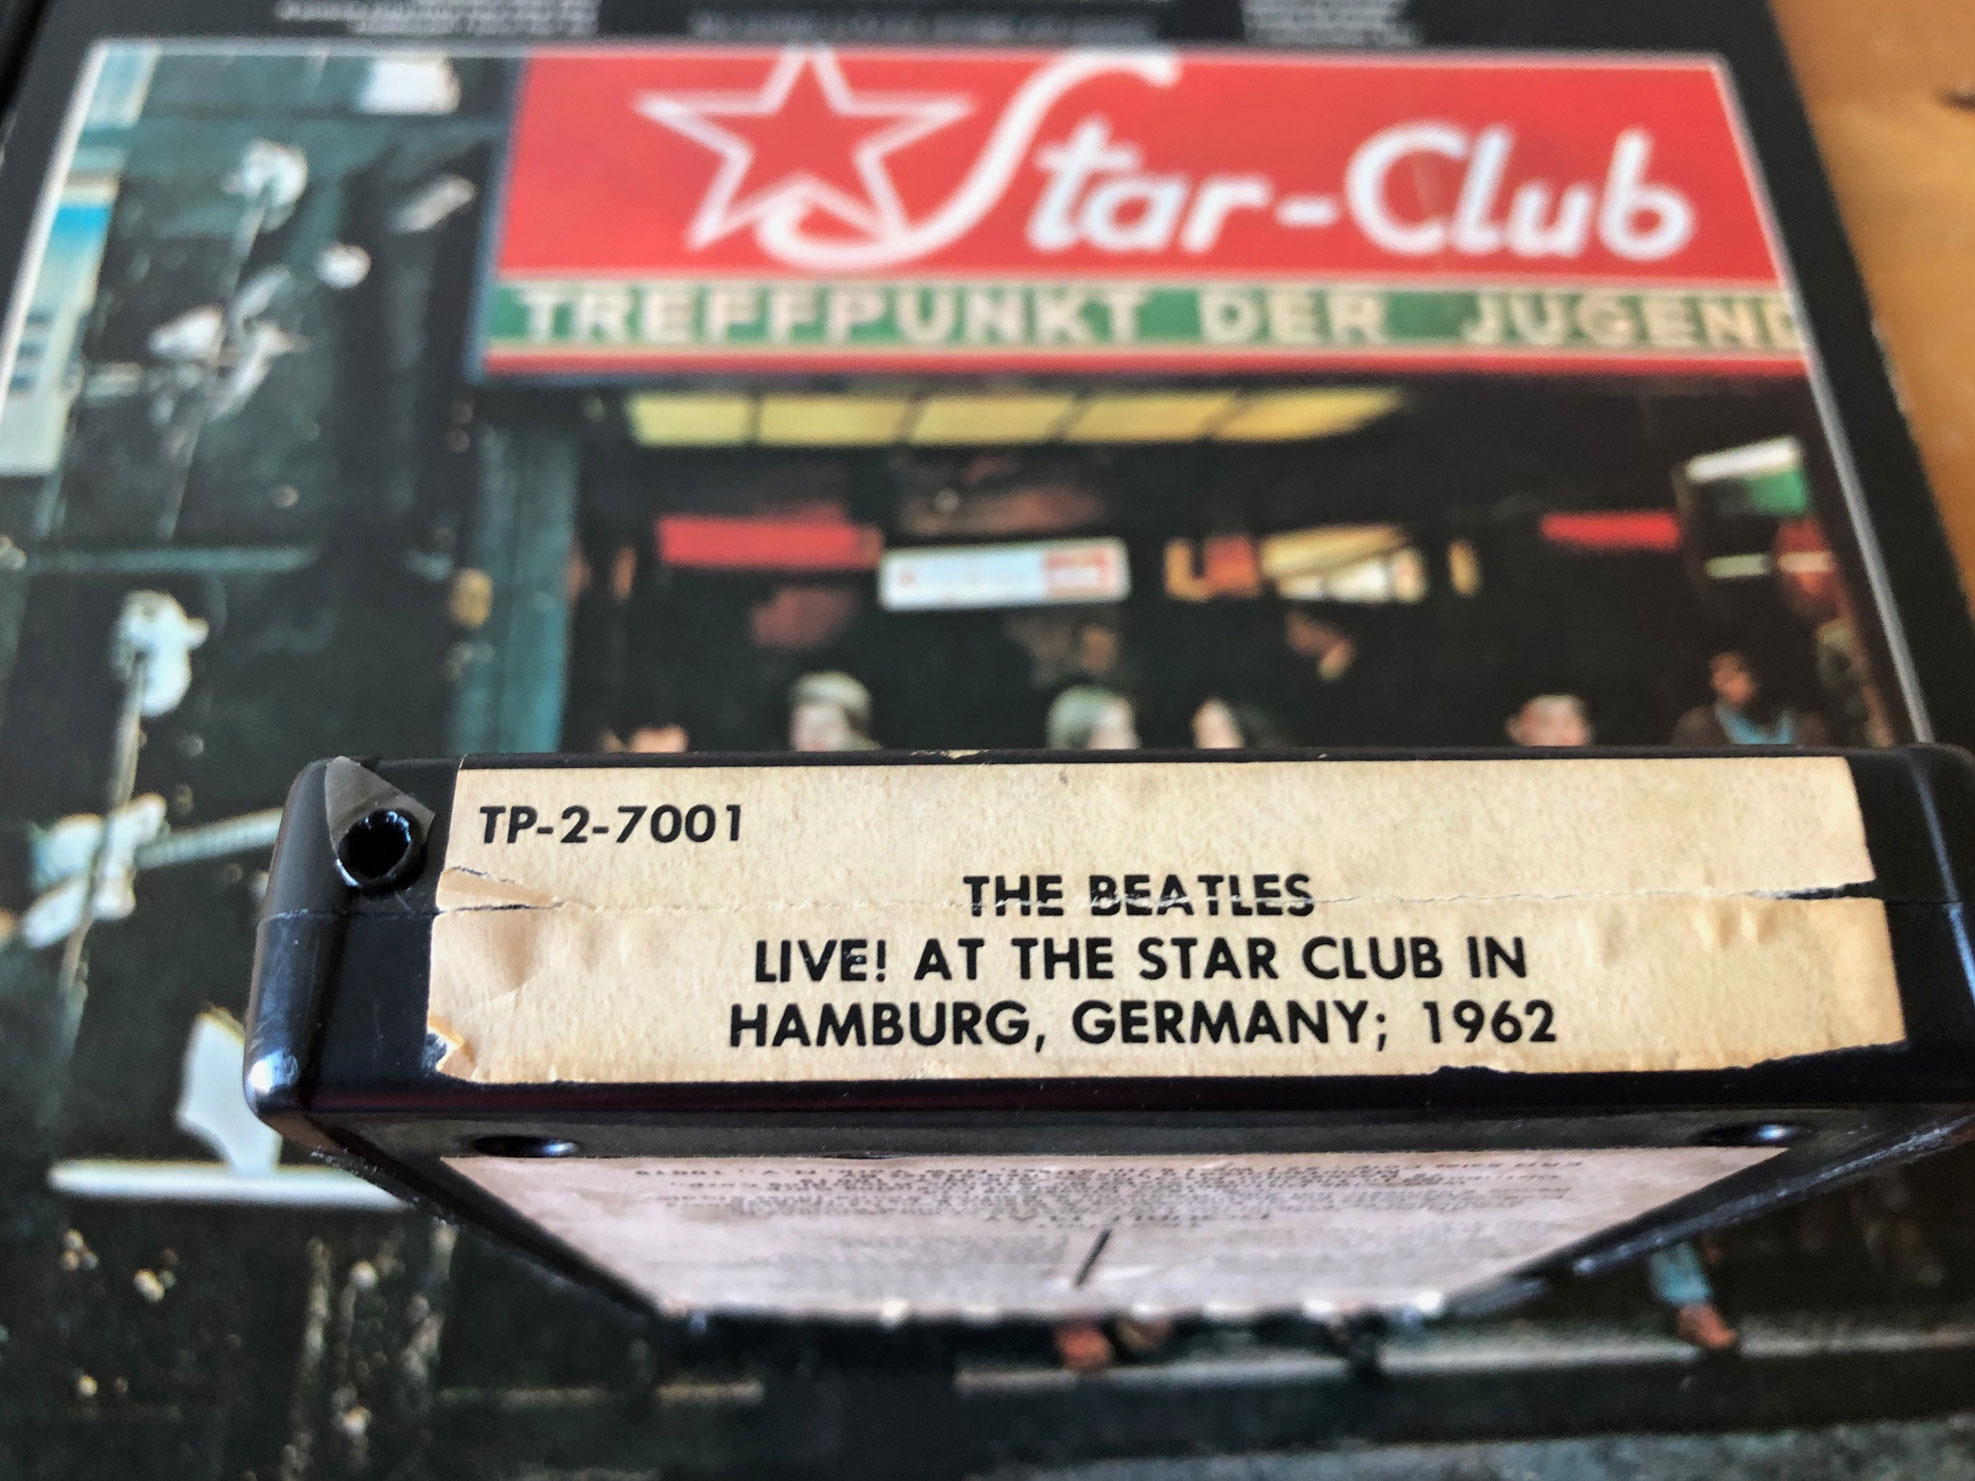 Live at the star-club in hamburg germany 1962 | The Beatles